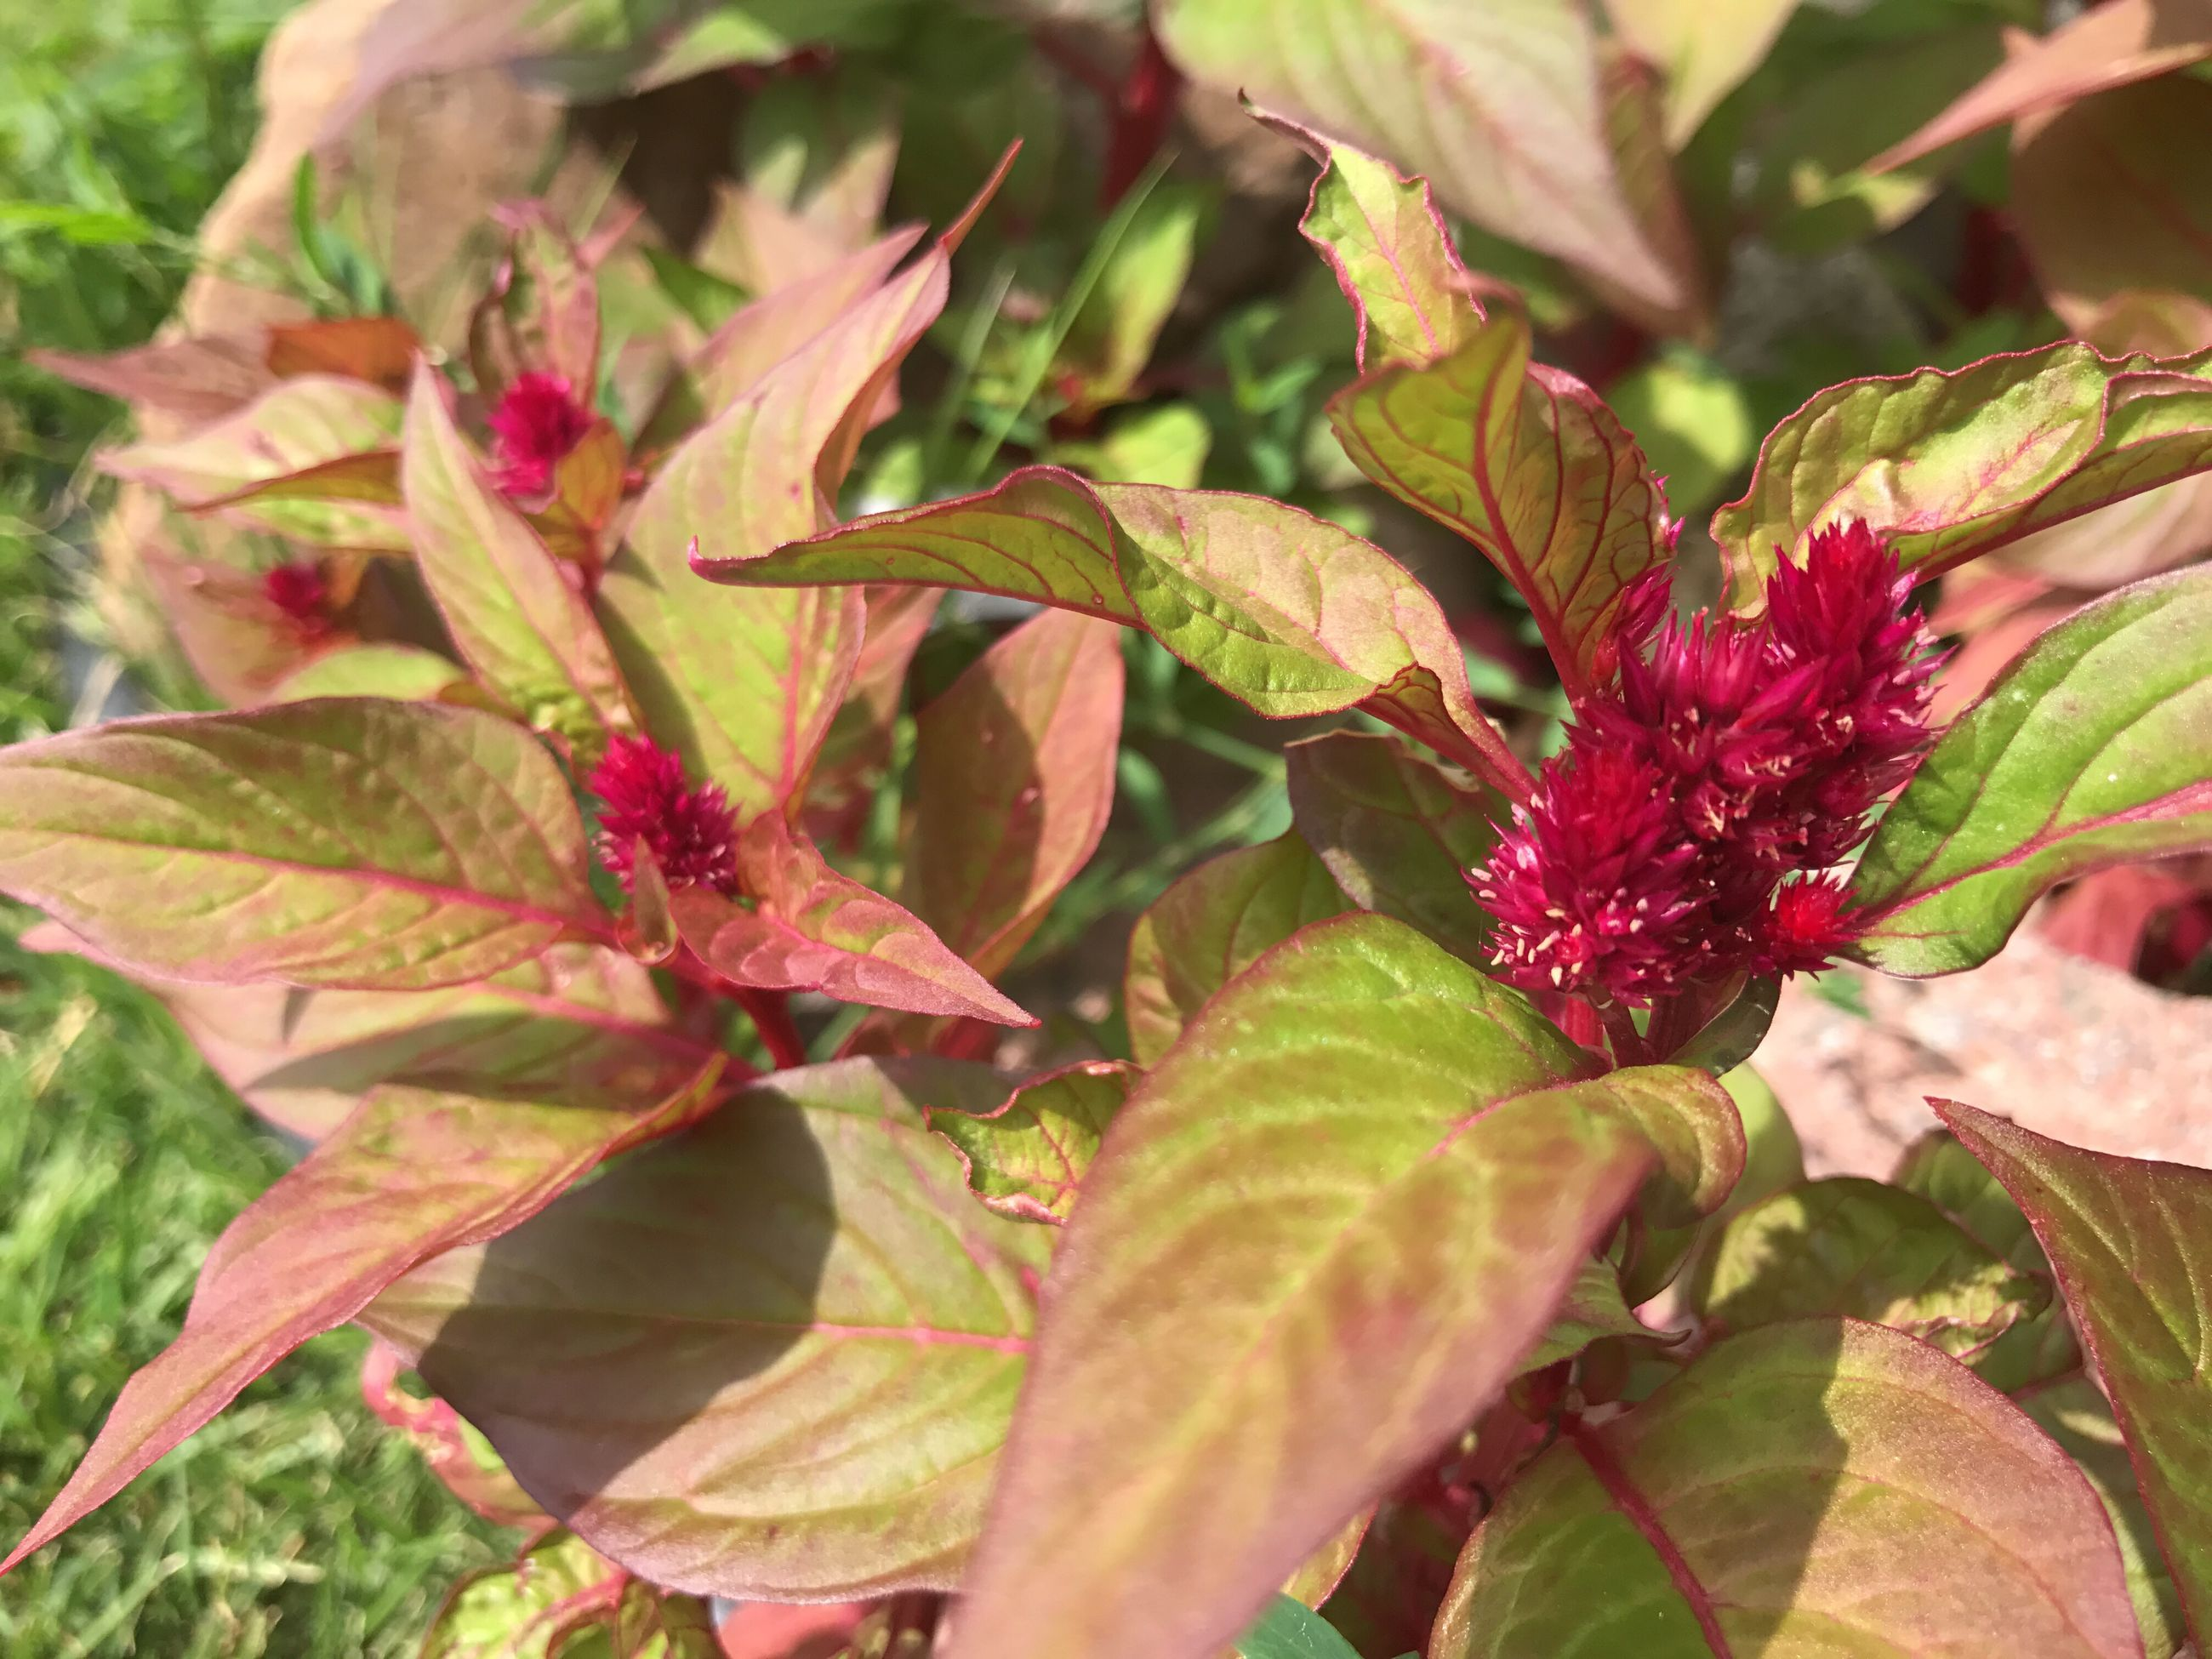 growth, leaf, red, flower, plant, nature, no people, outdoors, close-up, foliage, day, freshness, beauty in nature